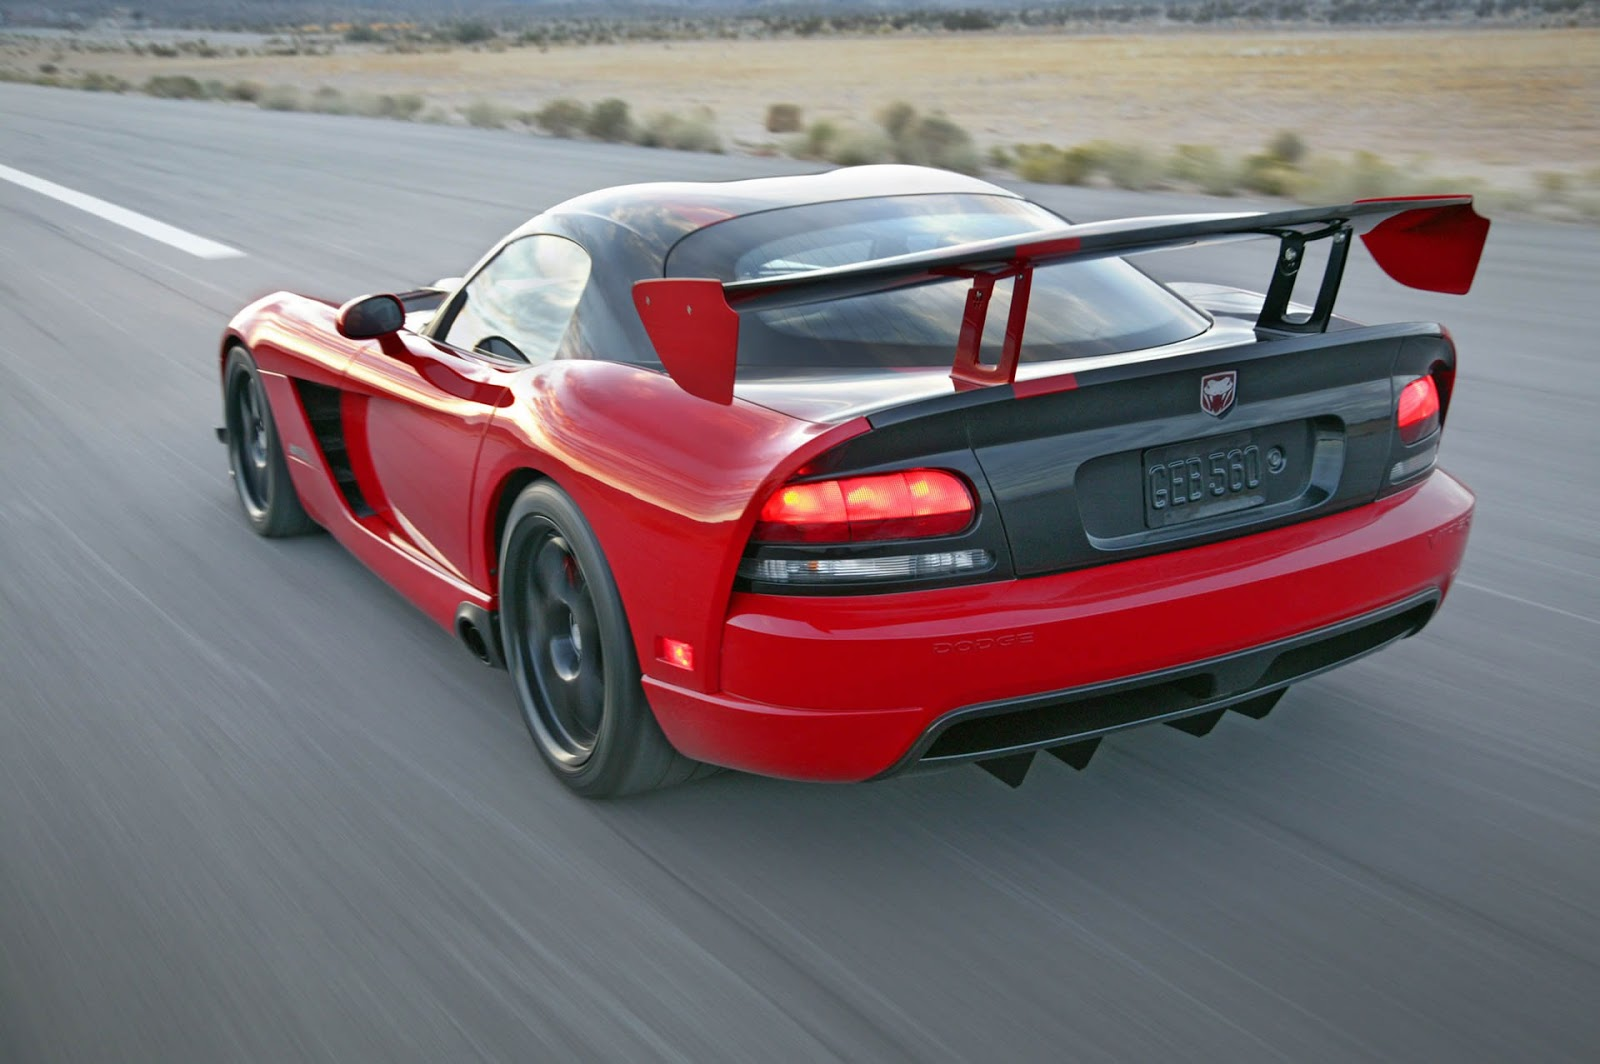 2015 SRT Viper ACR Images | Just Welcome To Automotive